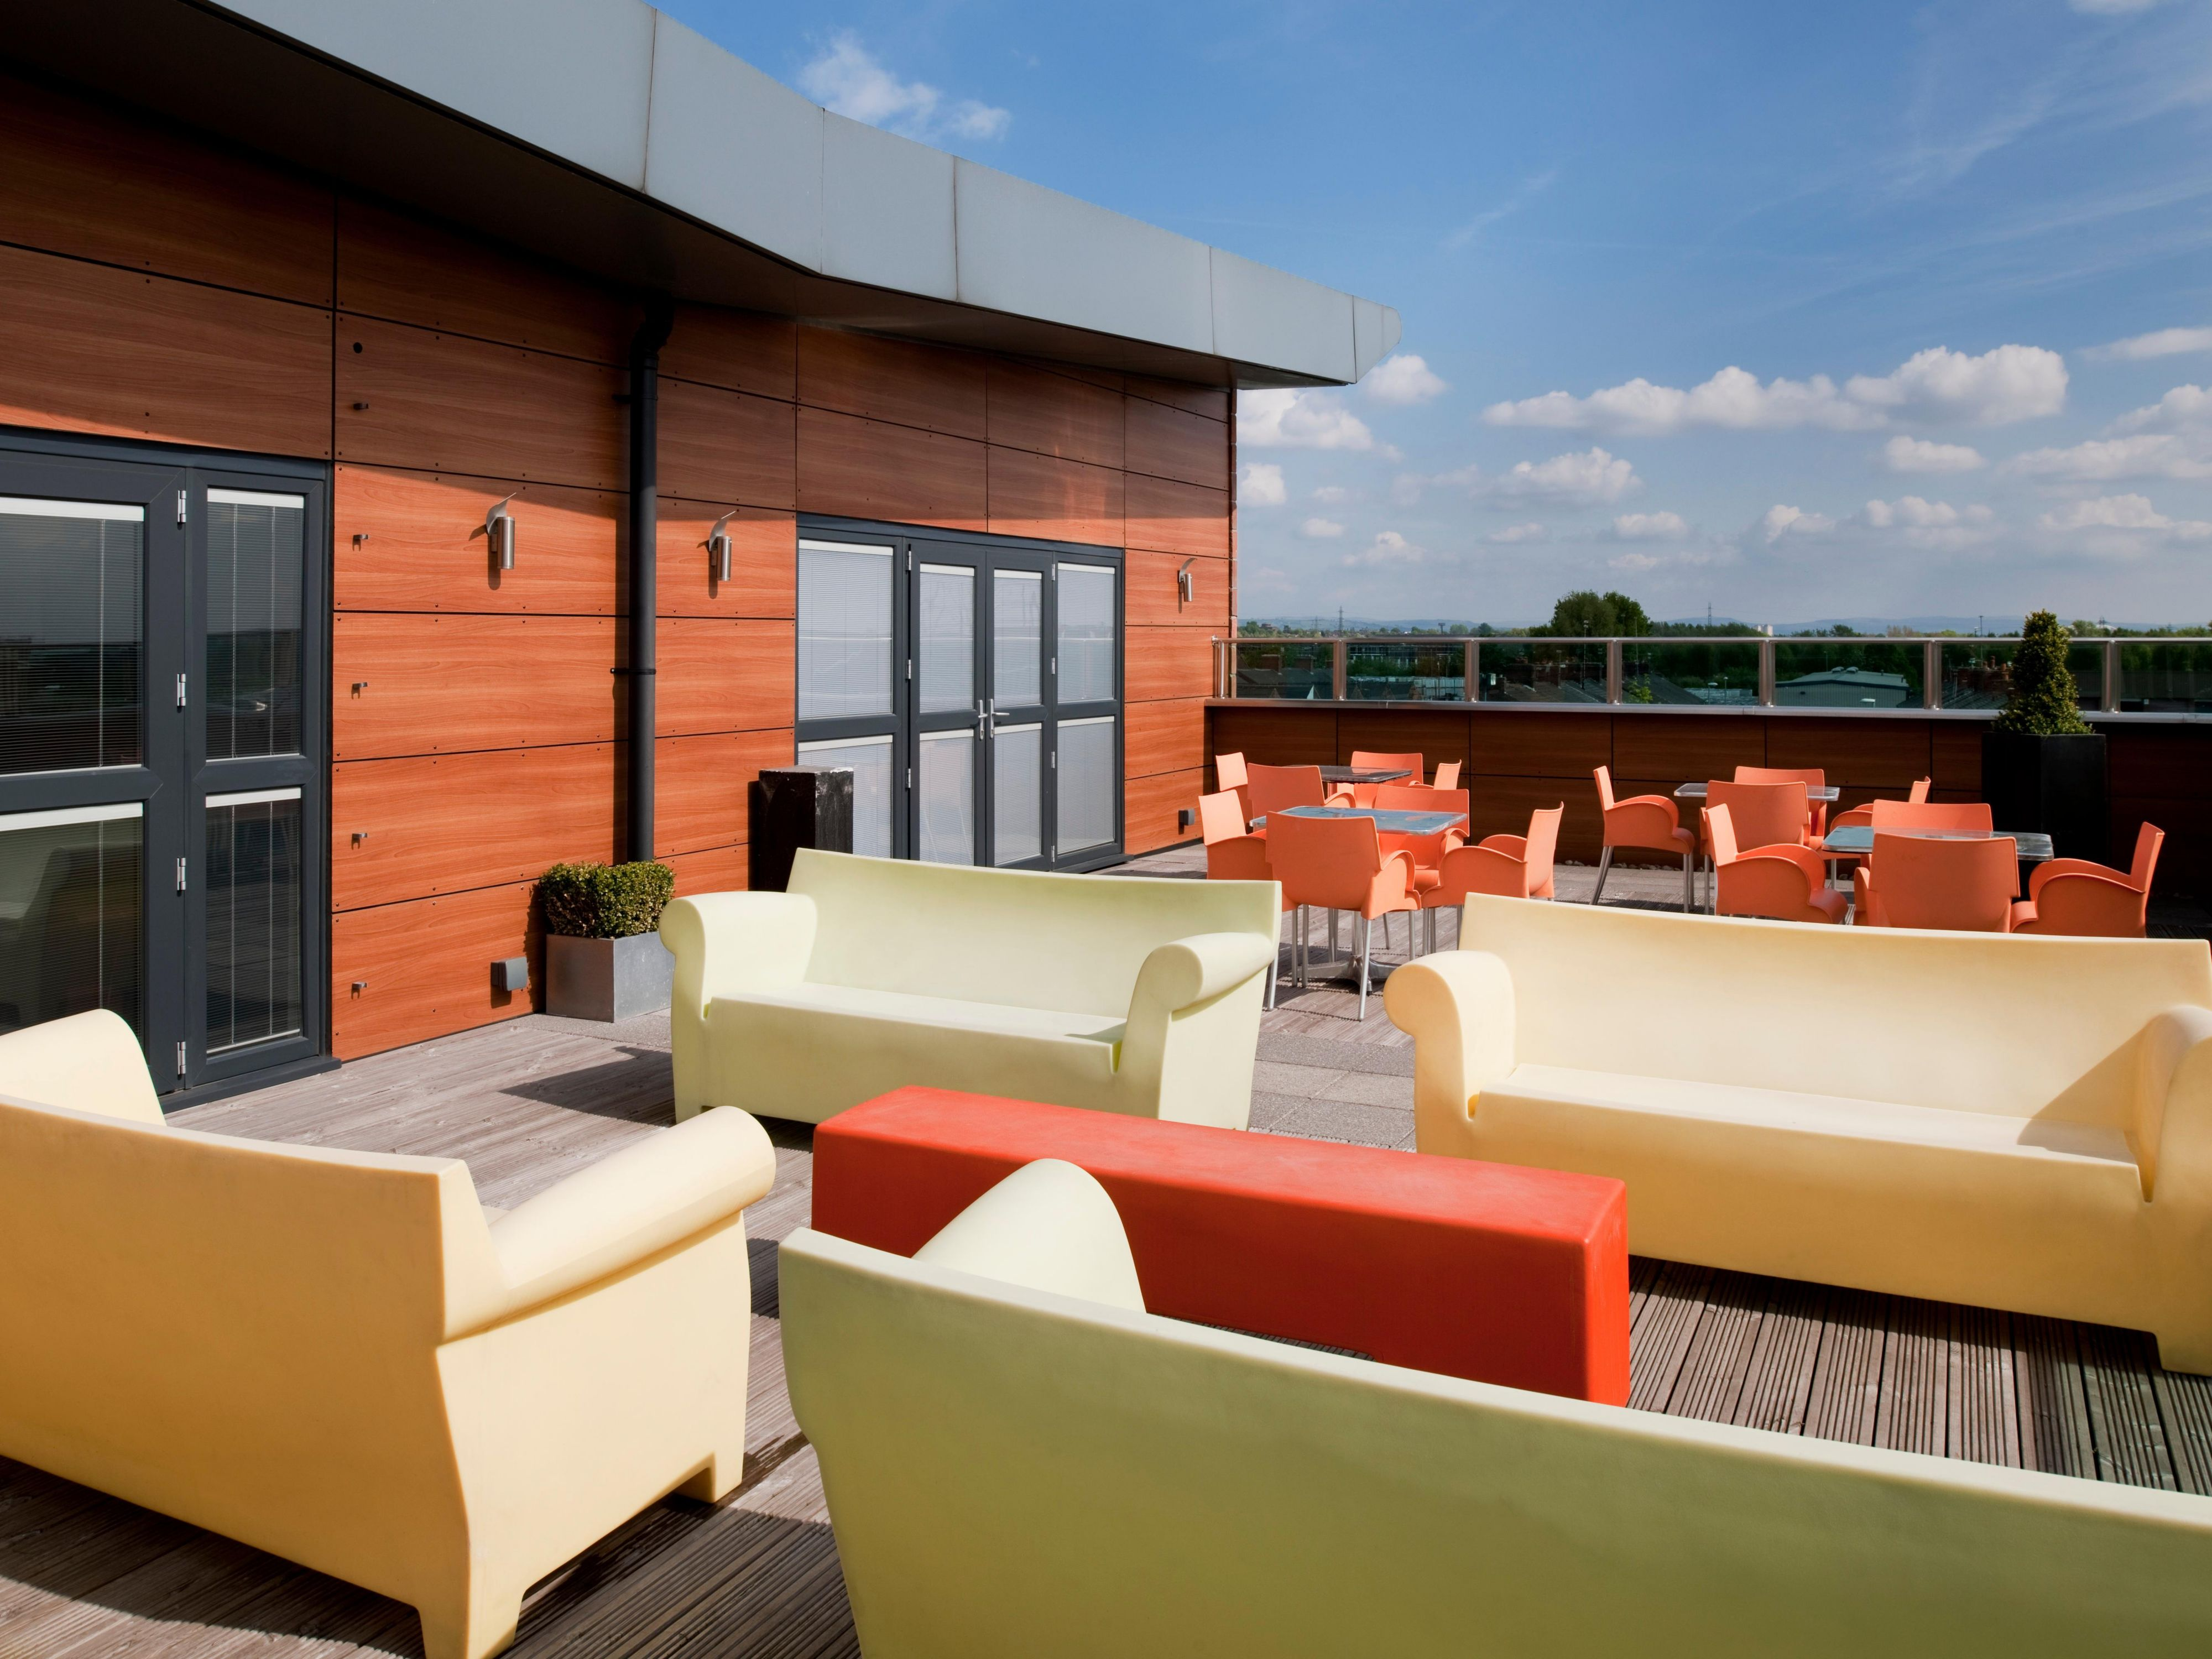 Enjoy an ice cold drink on one of our roof terraces on the Summer